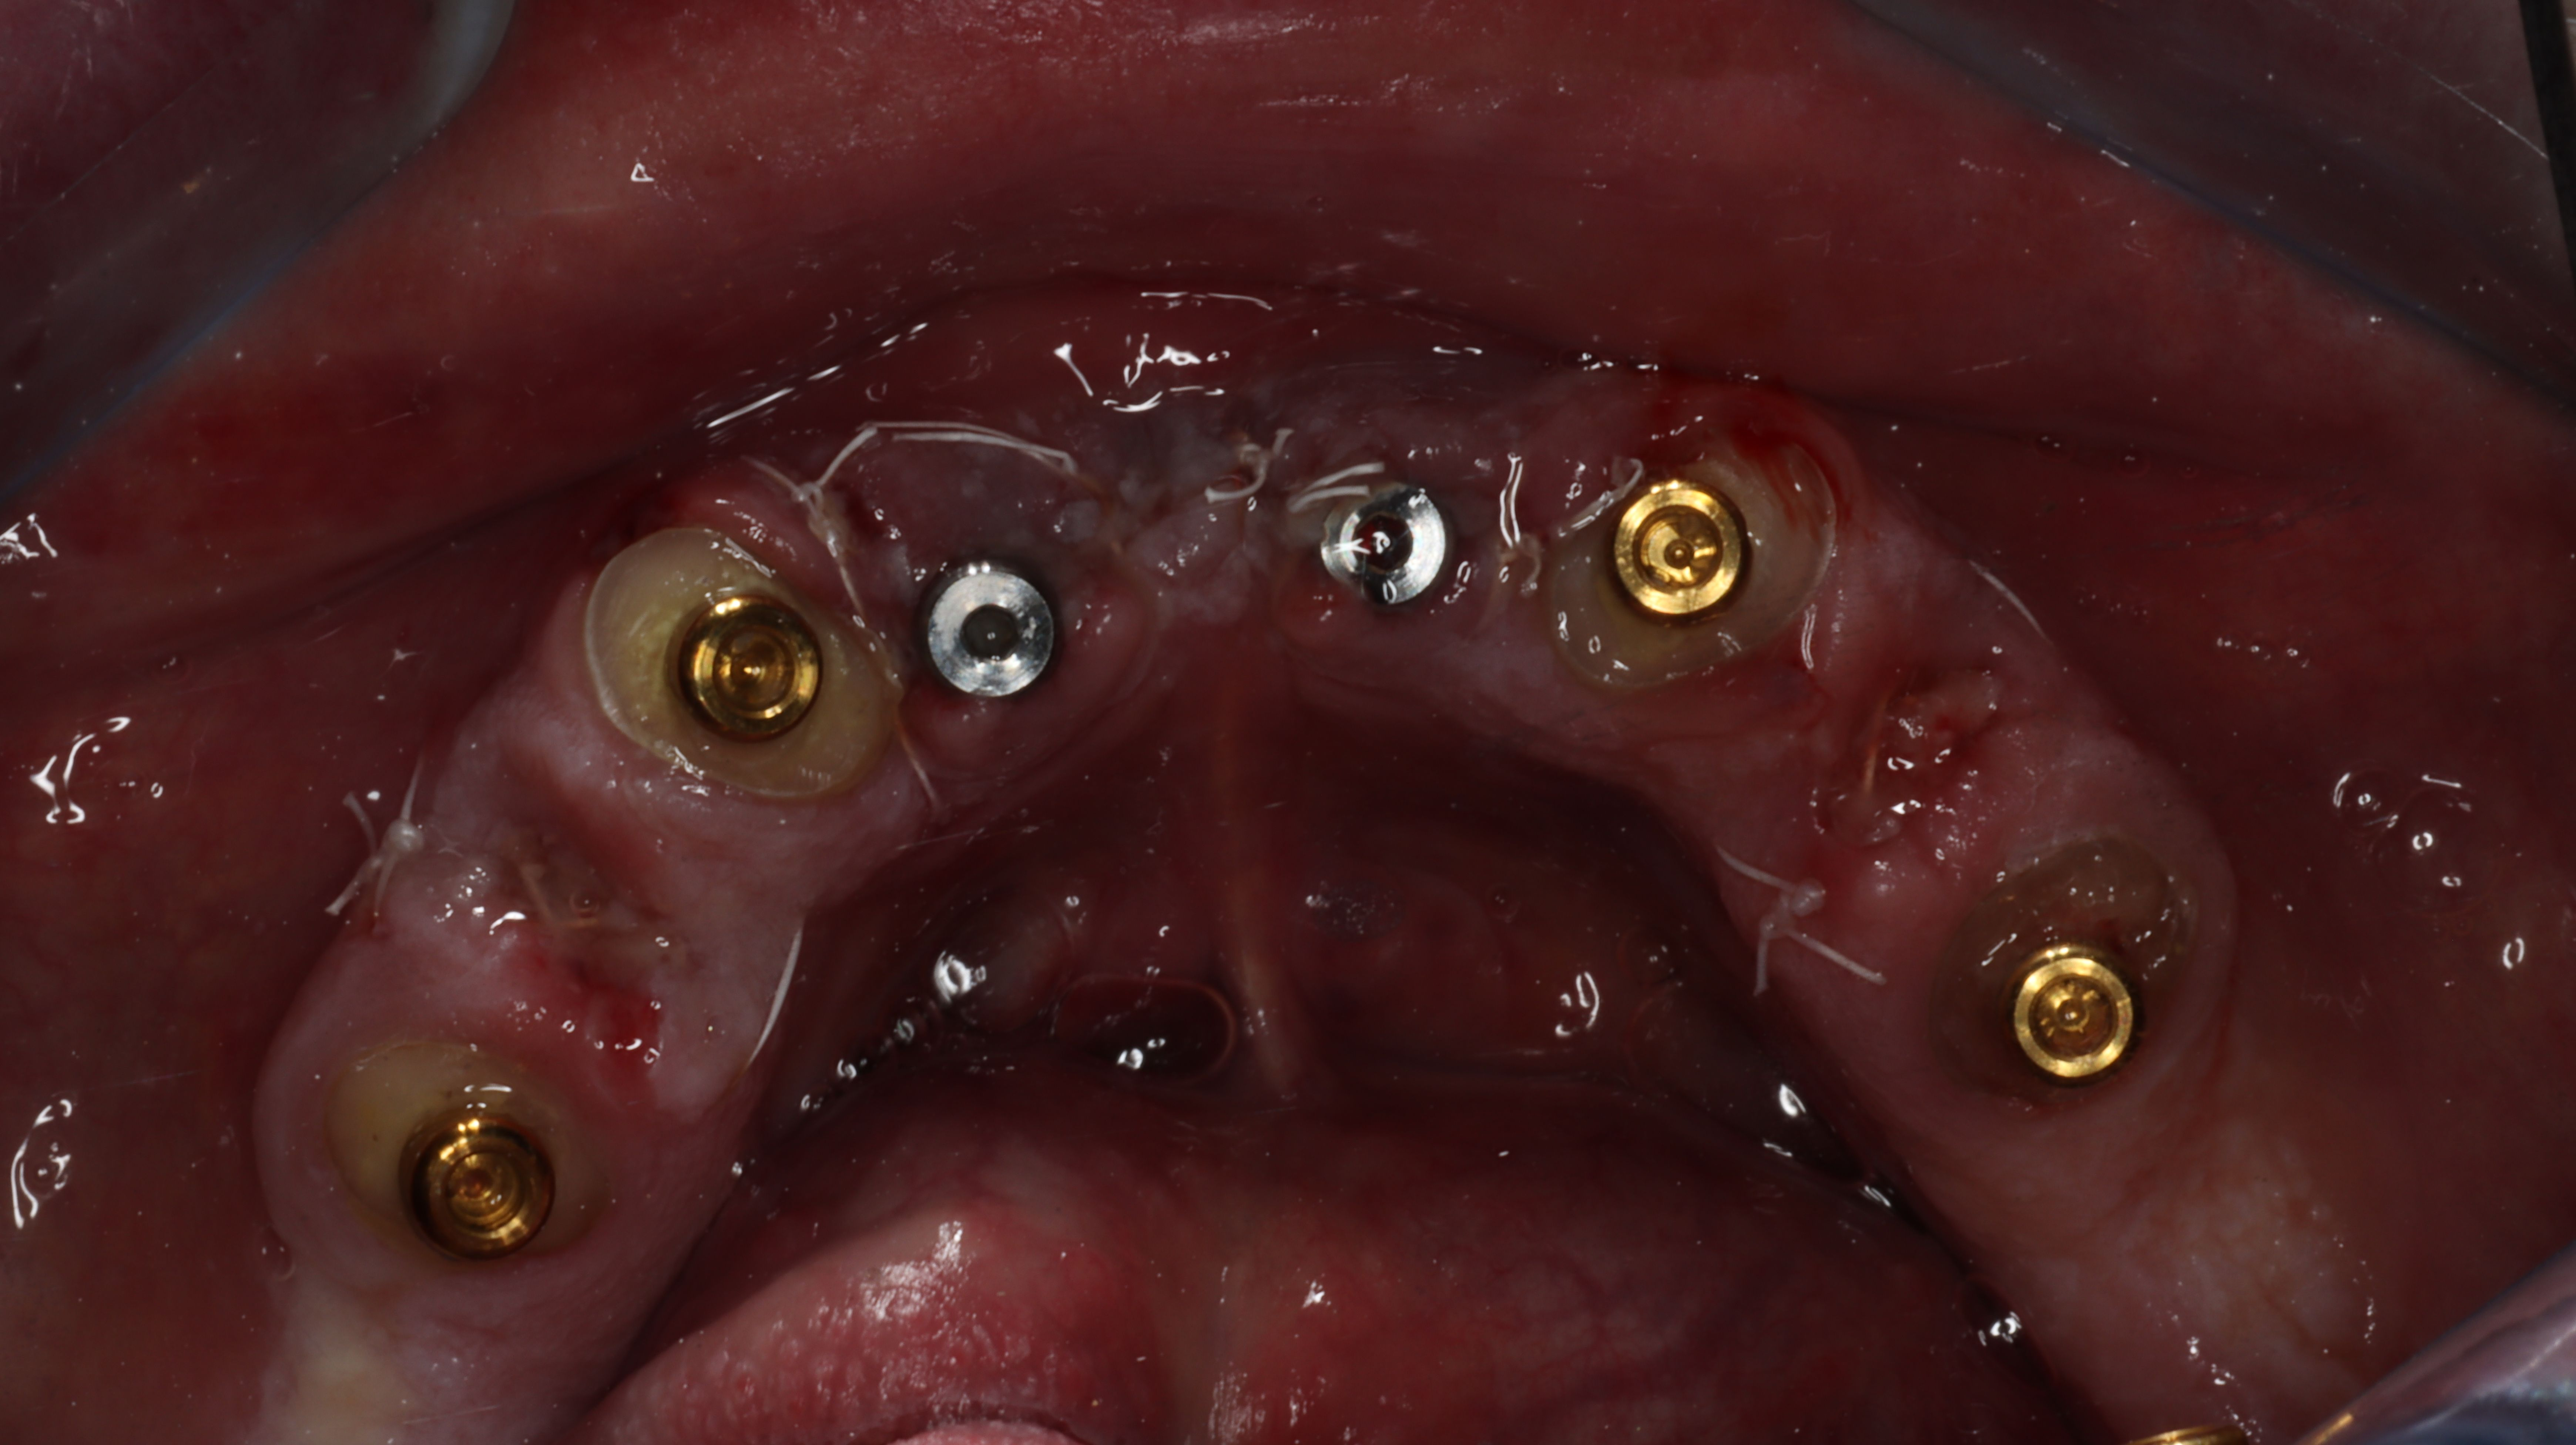 Figure 21. Surgical appointment, extractions of first bicuspids with dentin grind-PRP/PRF bone grafts, locator root form abutments seated into endo teeth and Lodi dental implants placed into anterior symphysis (Zest Dental Solutions).